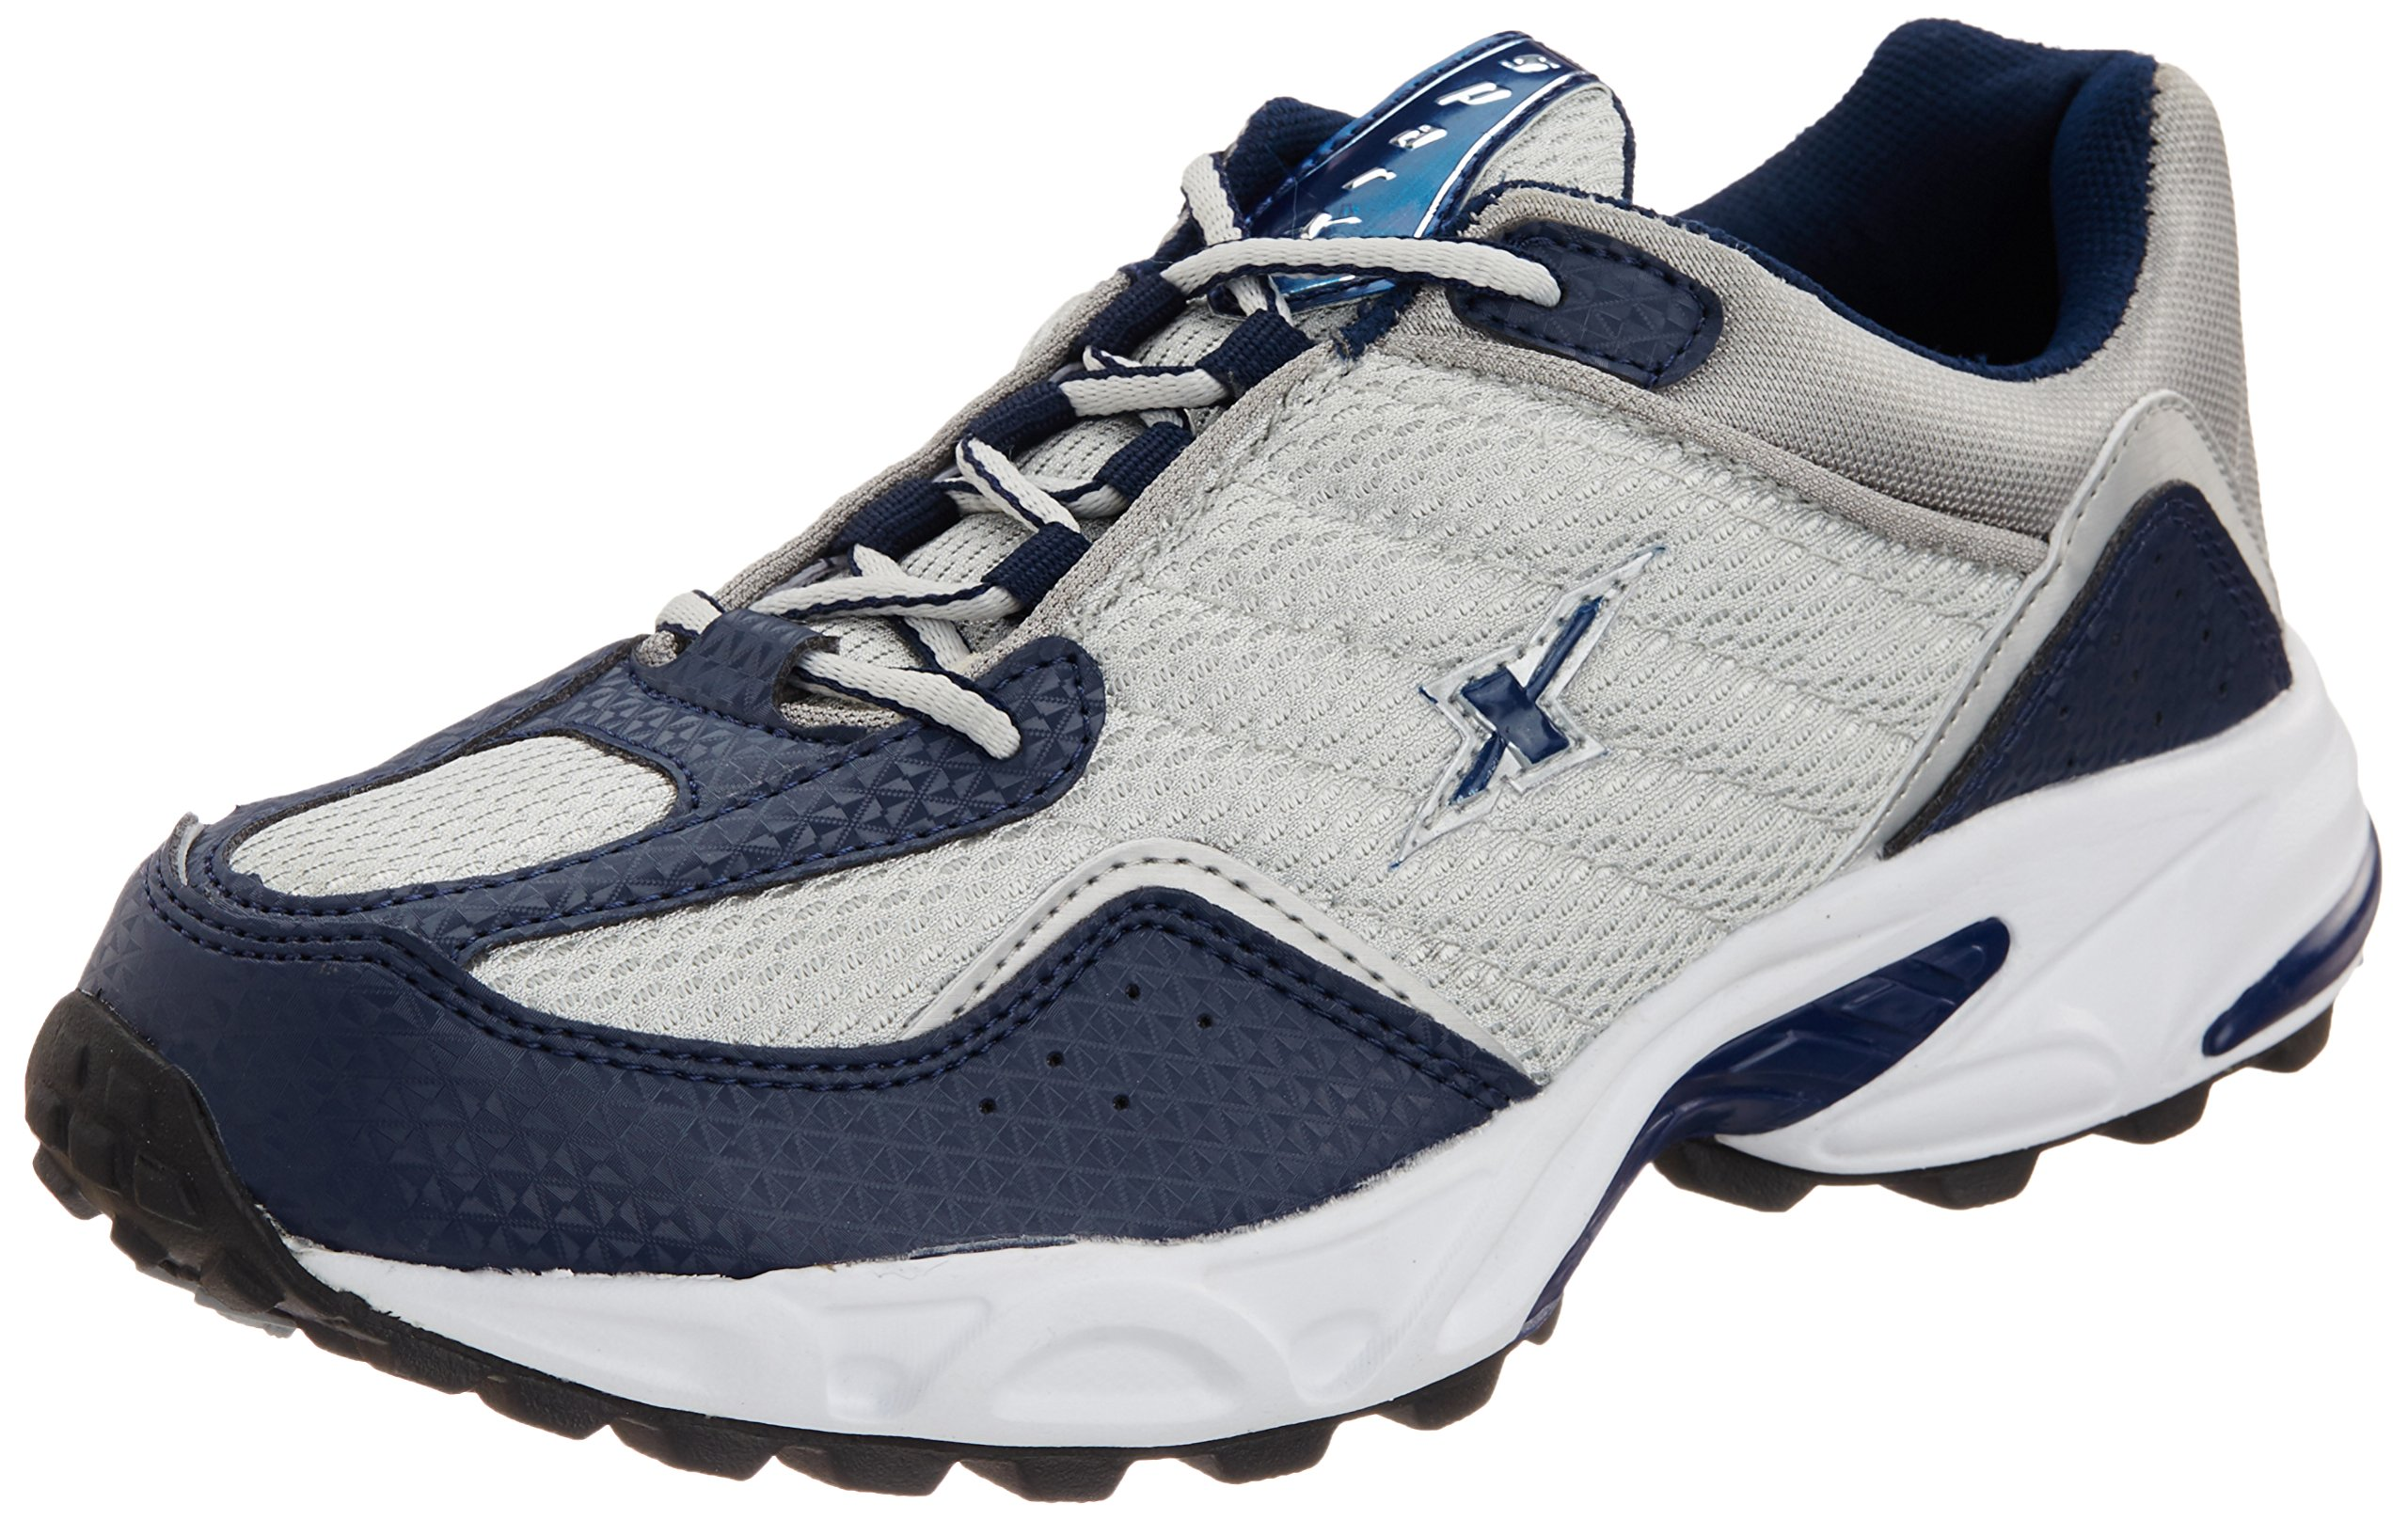 Navy Blue and Silver Running Shoes